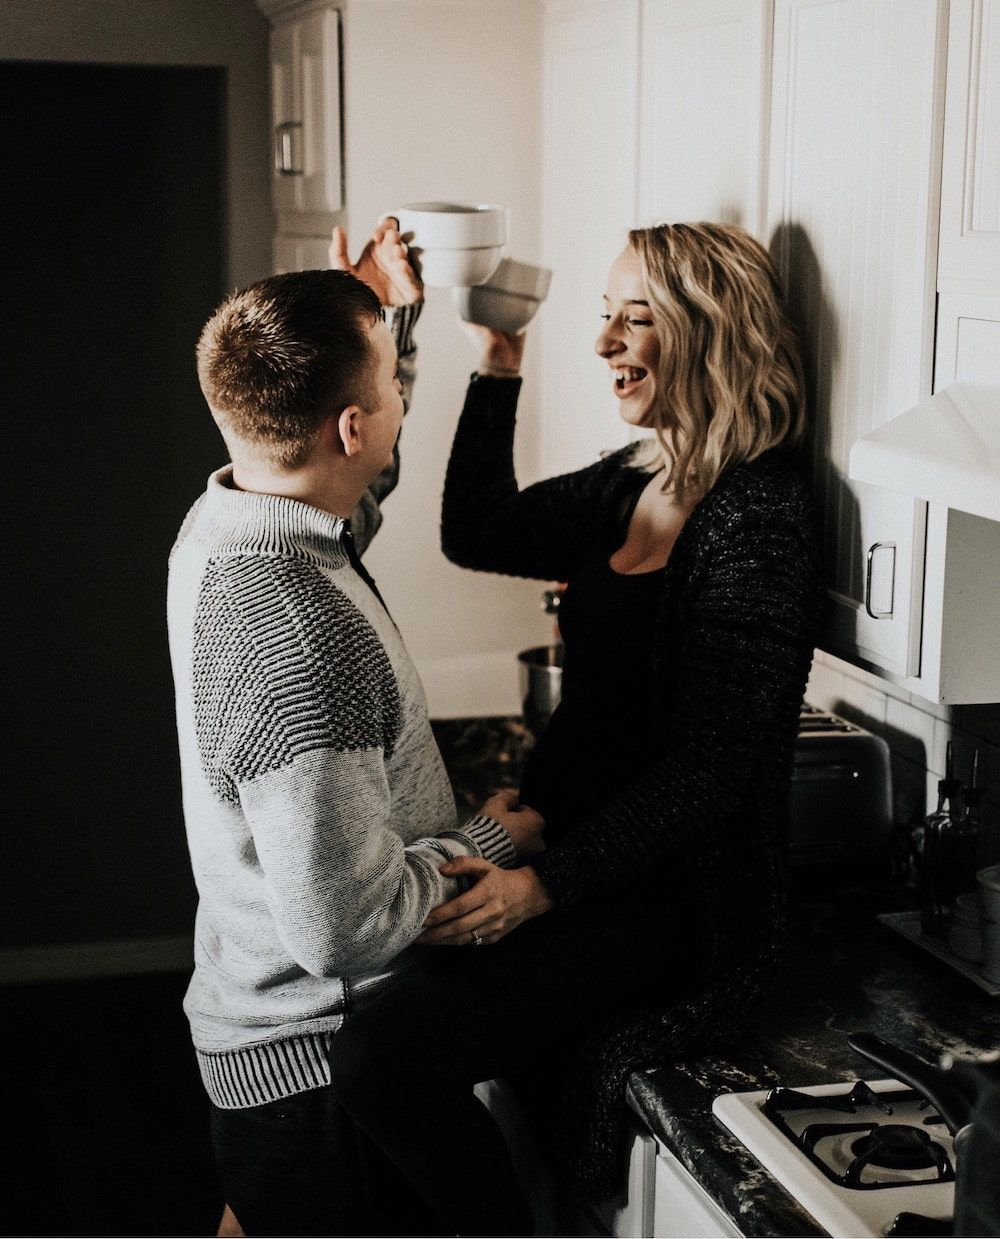 couple celebrating with cup of coffee in kitchen